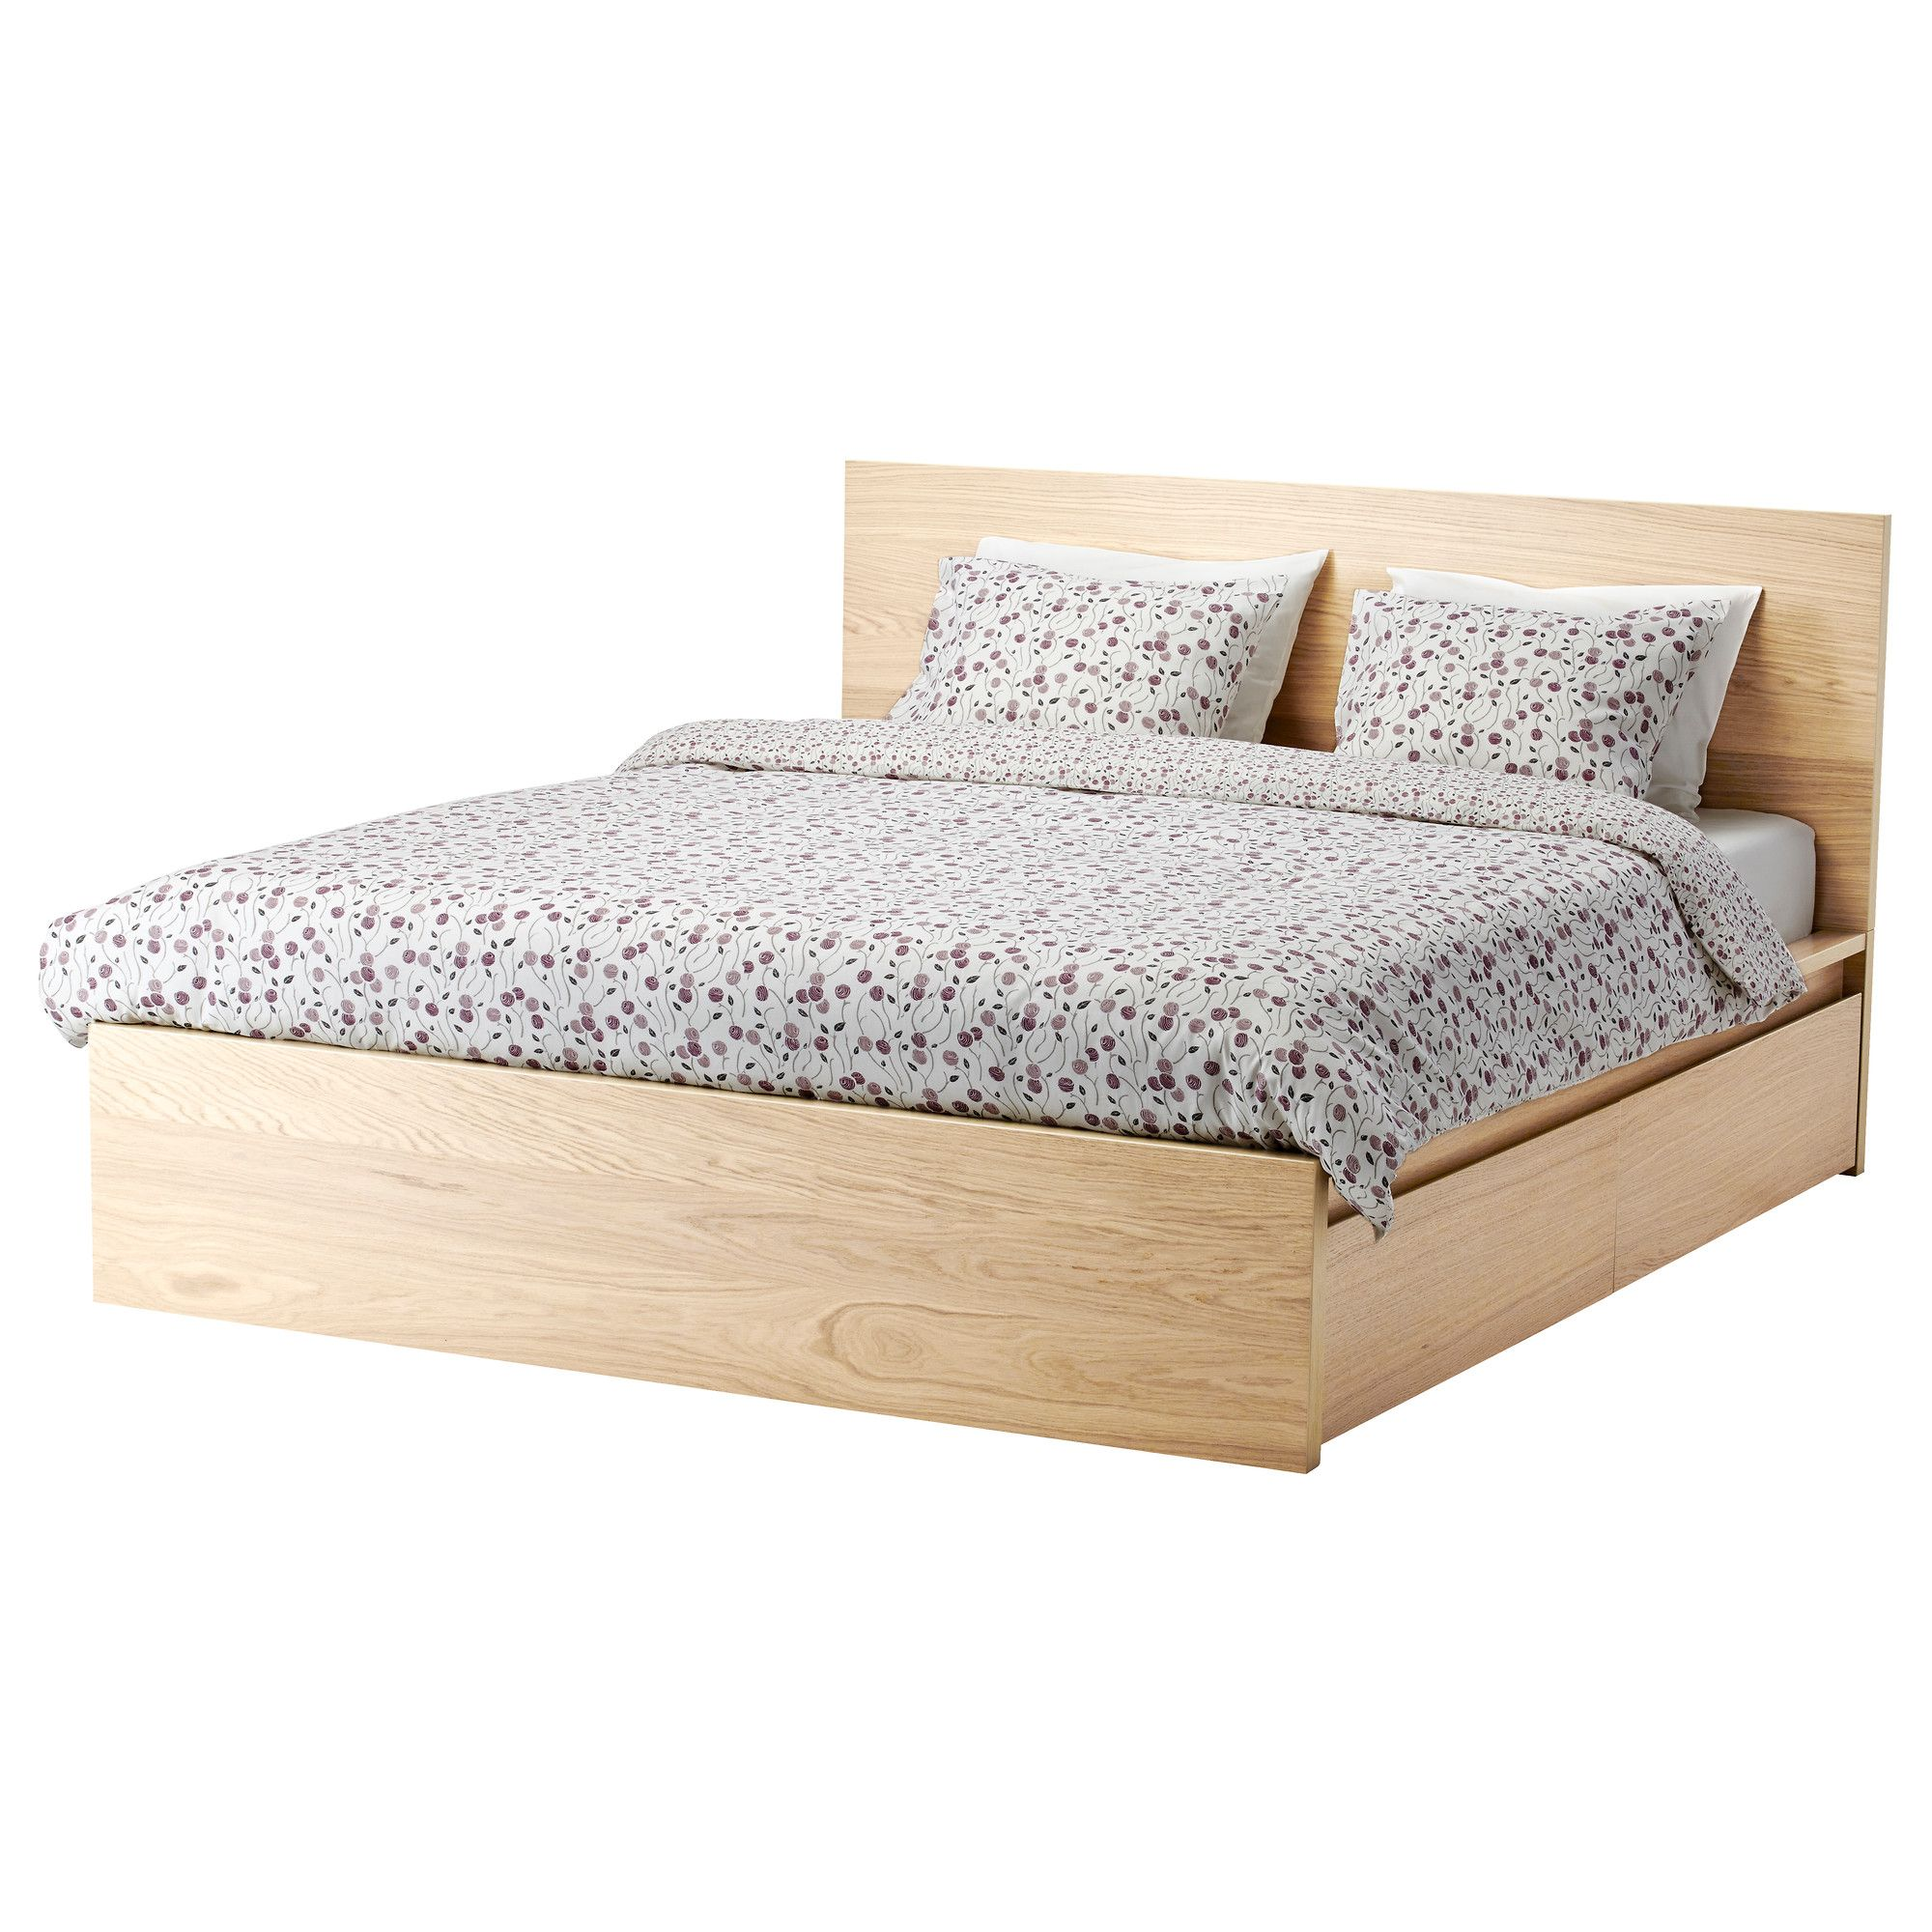 Ikea Malm High Bed Frame 2 Storage Boxes Queen Luroy The 2 Large Drawers On Casters Give You An Extra Storage Spa Malm Bed Malm Bed Frame Ikea Malm Bed